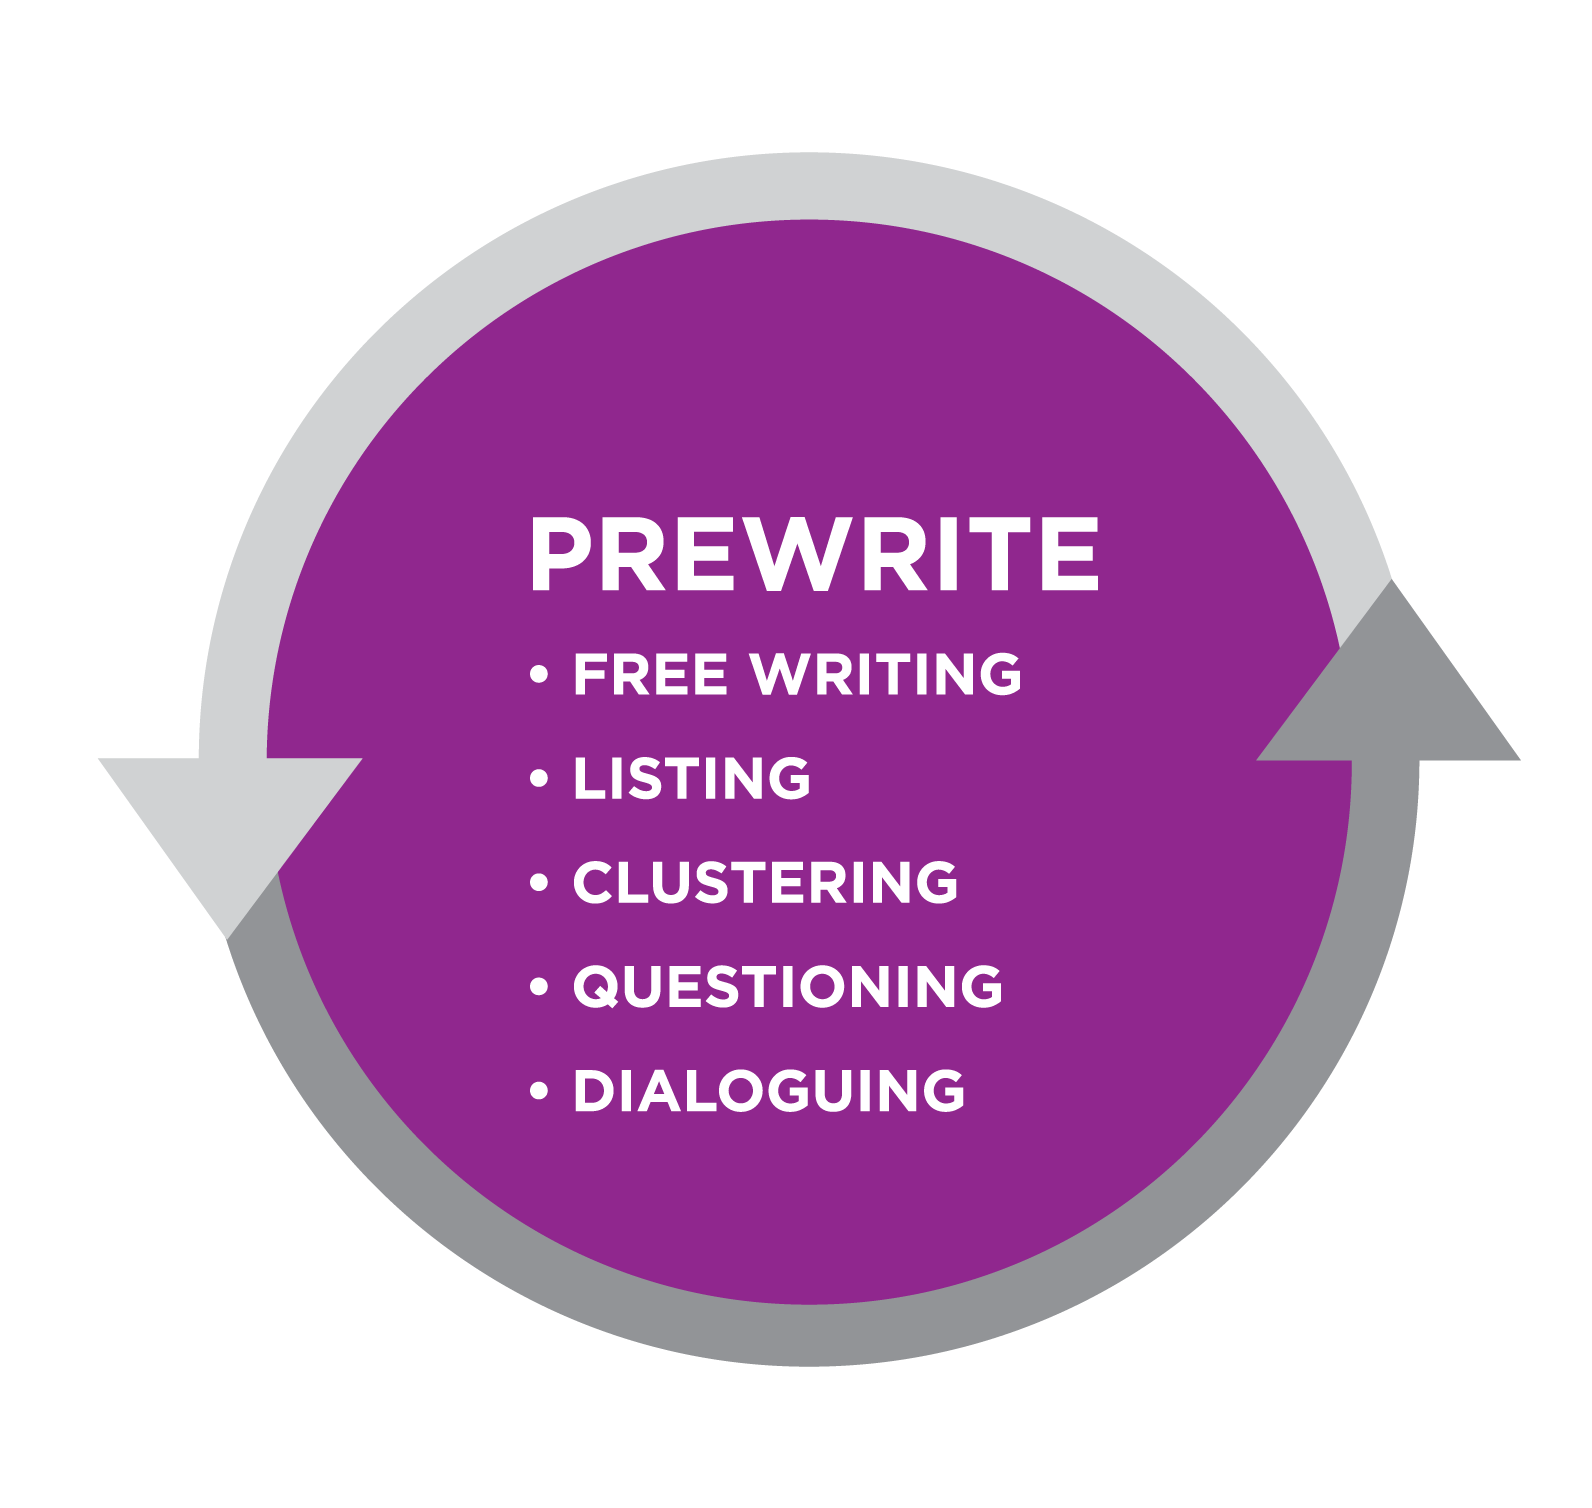 Graphic titled Prewrite. Bullet list: Free writing, listing, clustering, questioning, dialoguing. All text in a purple circle bordered by gray arrows.